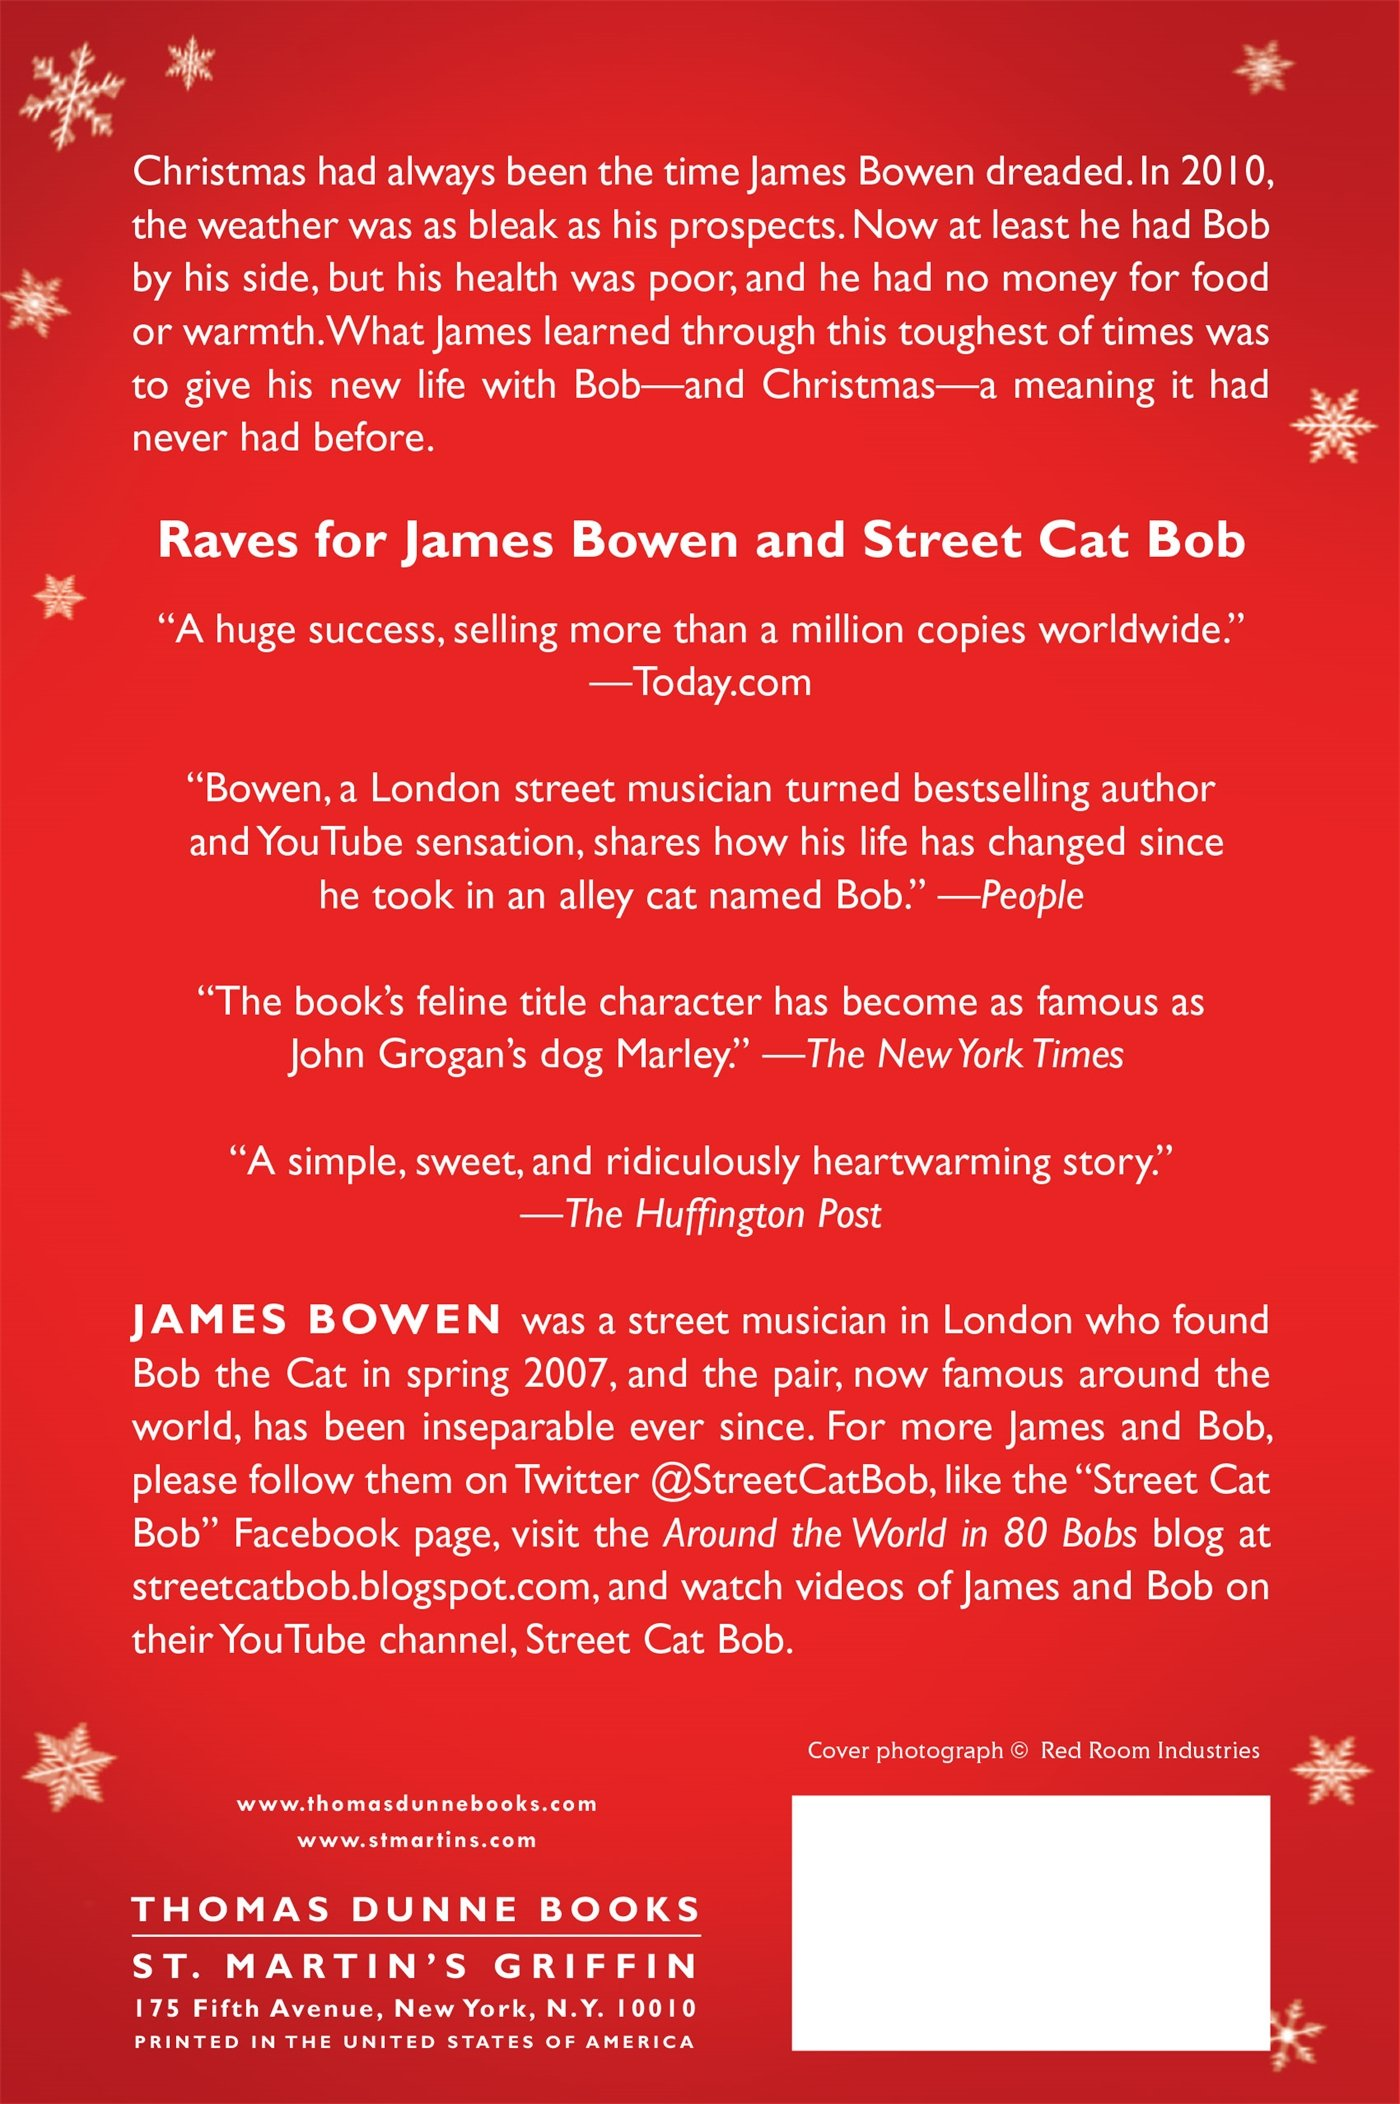 A gift from bob how a street cat helped one man learn the meaning a gift from bob how a street cat helped one man learn the meaning of christmas james bowen 9781250104960 amazon books fandeluxe Gallery